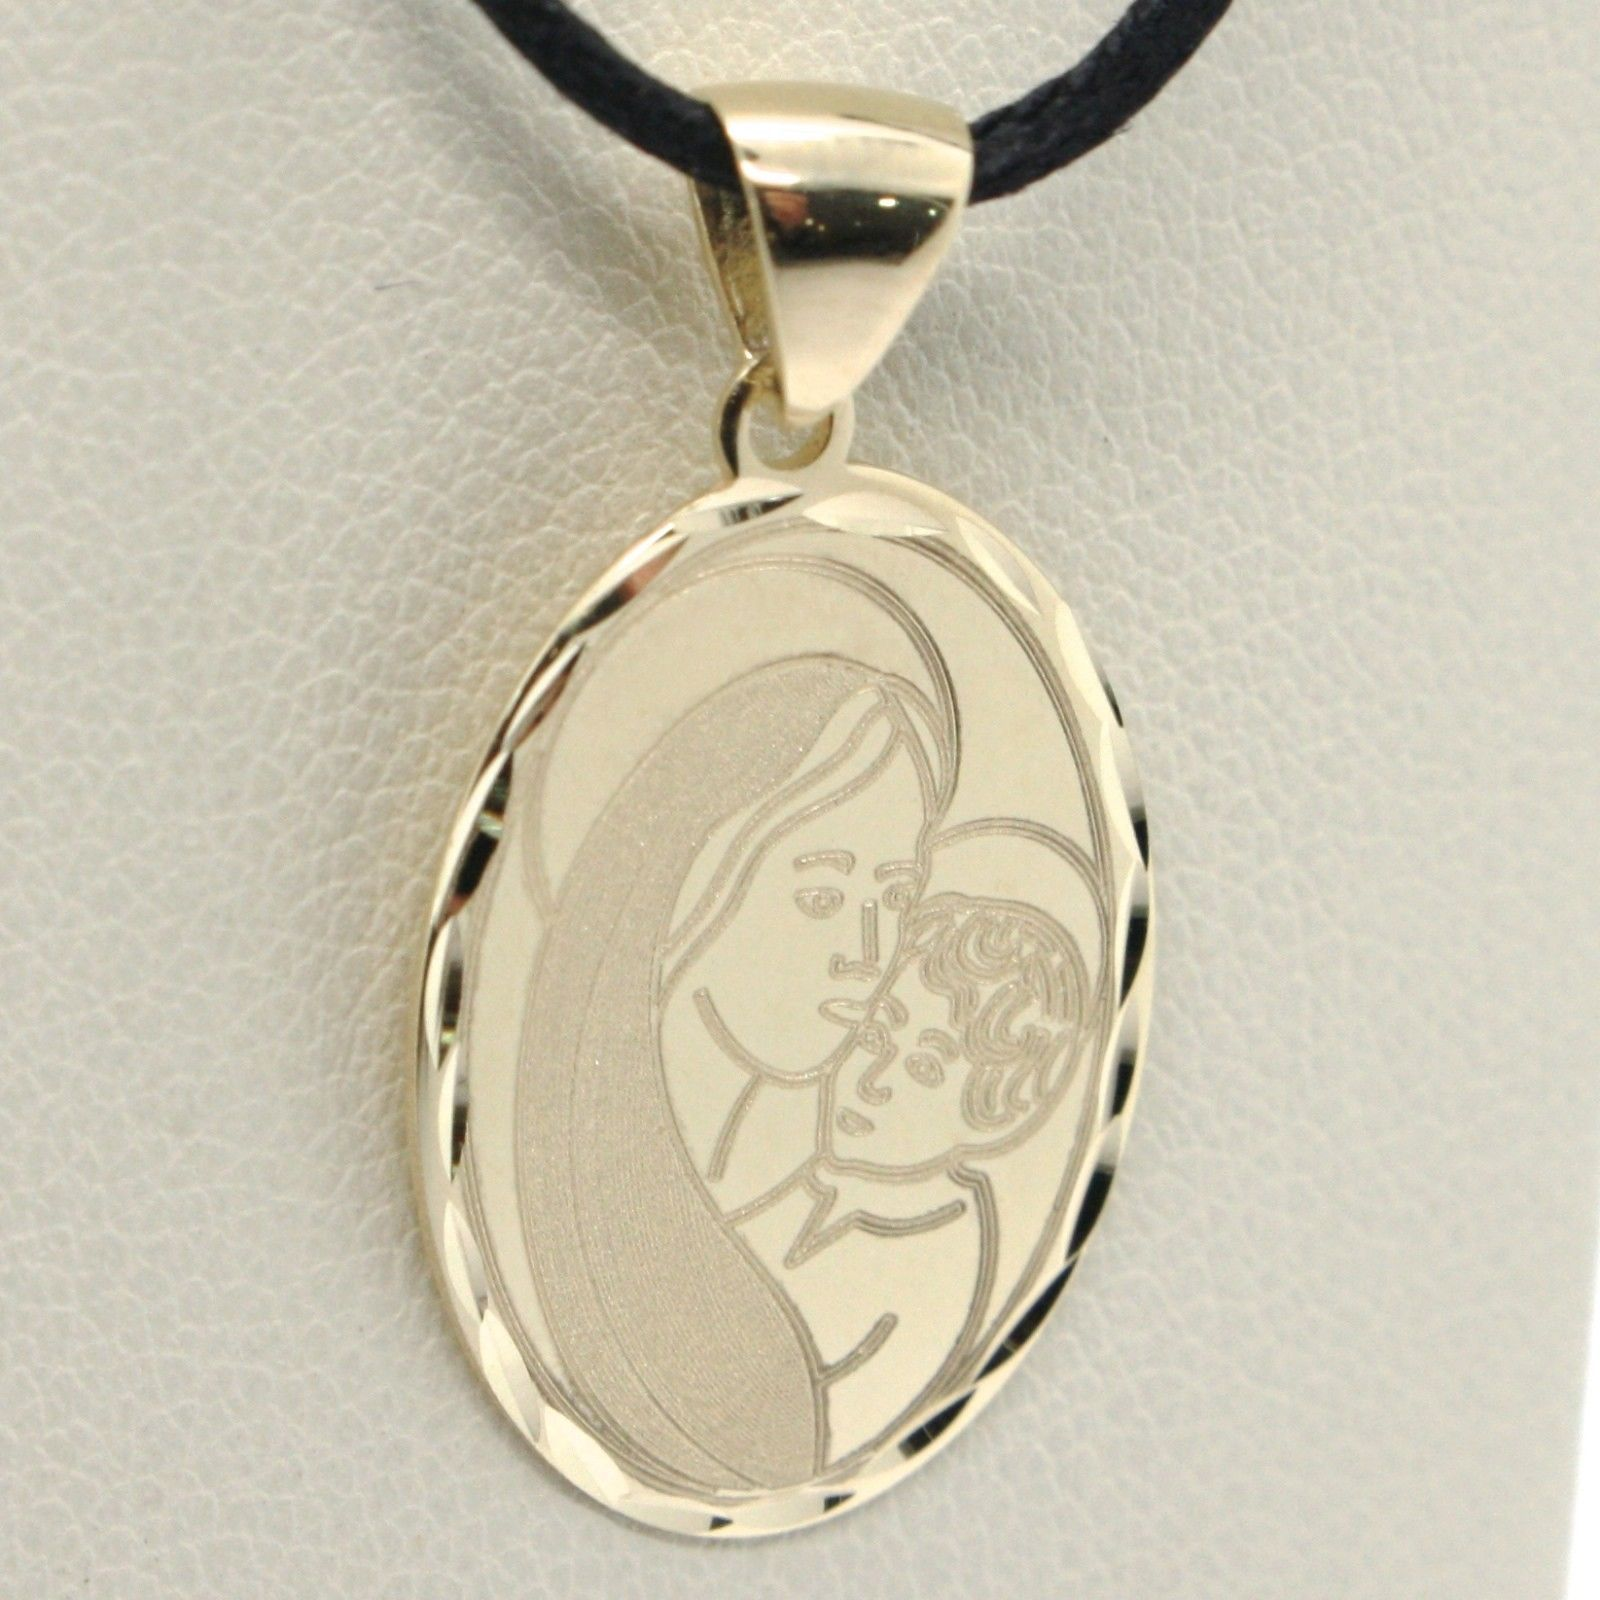 SOLID 18K YELLOW GOLD VIRGIN MARY AND JESUS OVAL MEDAL, 0.8 INCHES, ITALY MADE